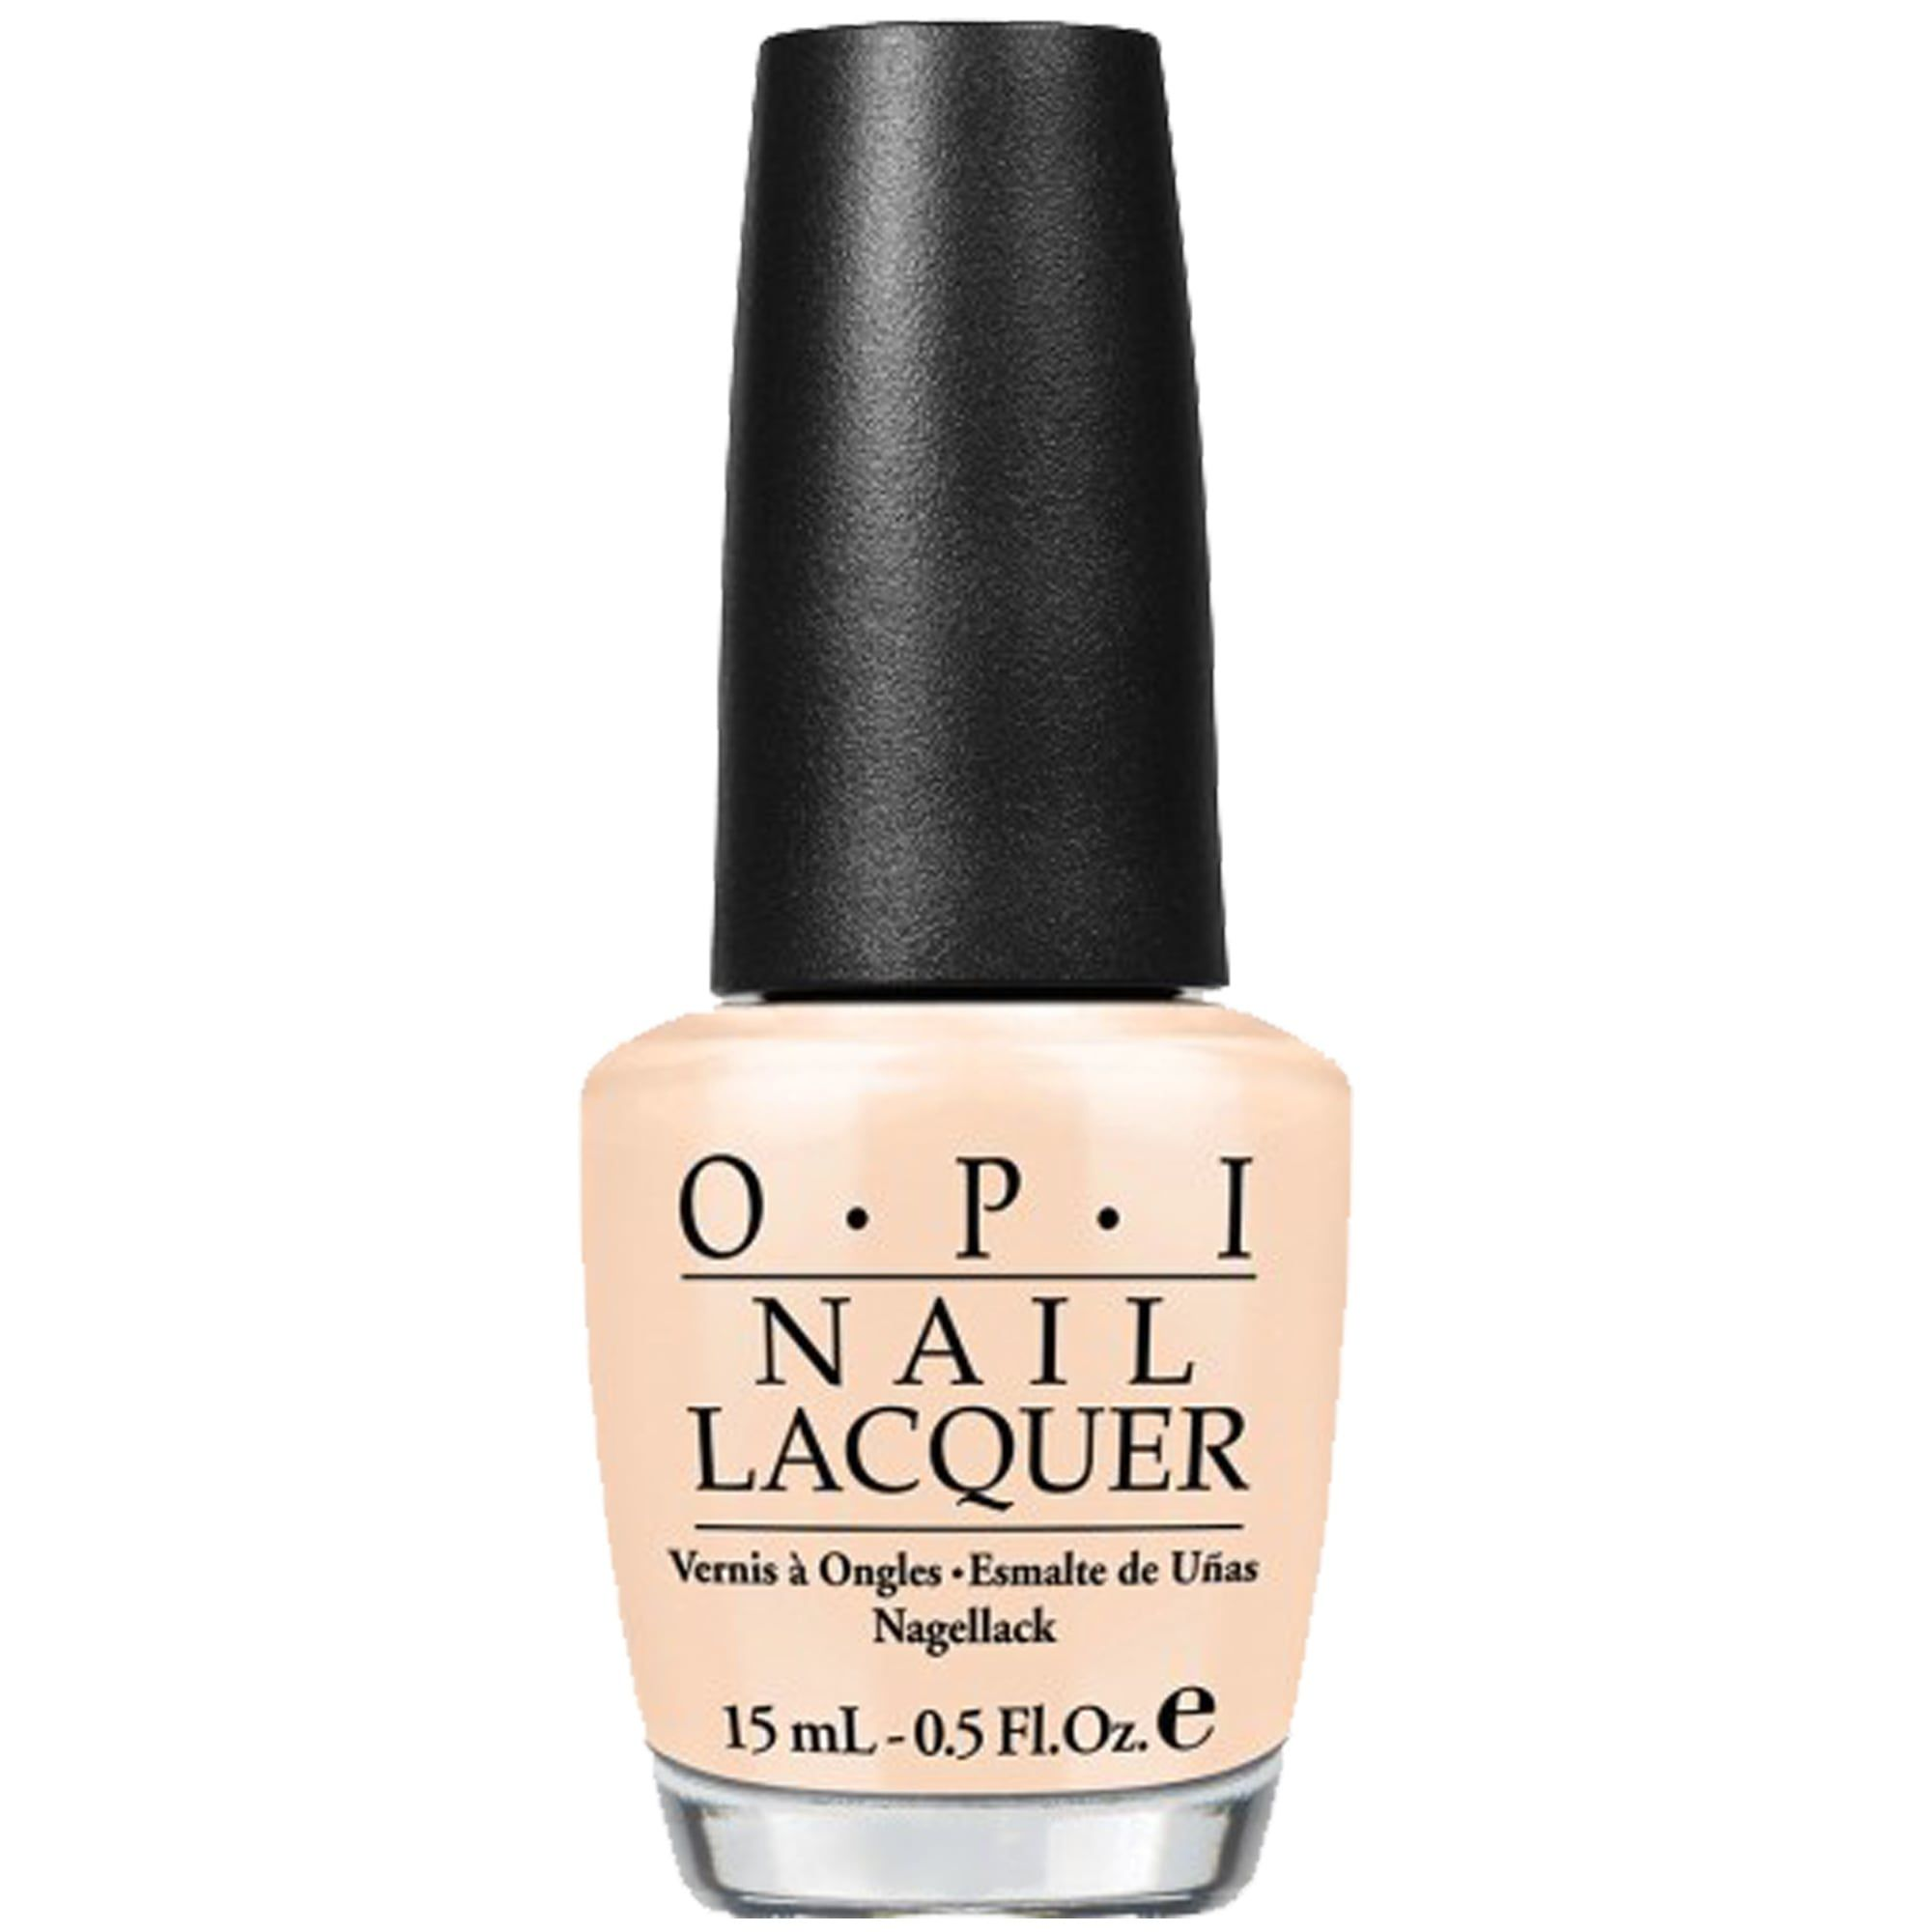 OPI Classic Nail Lacquer $11